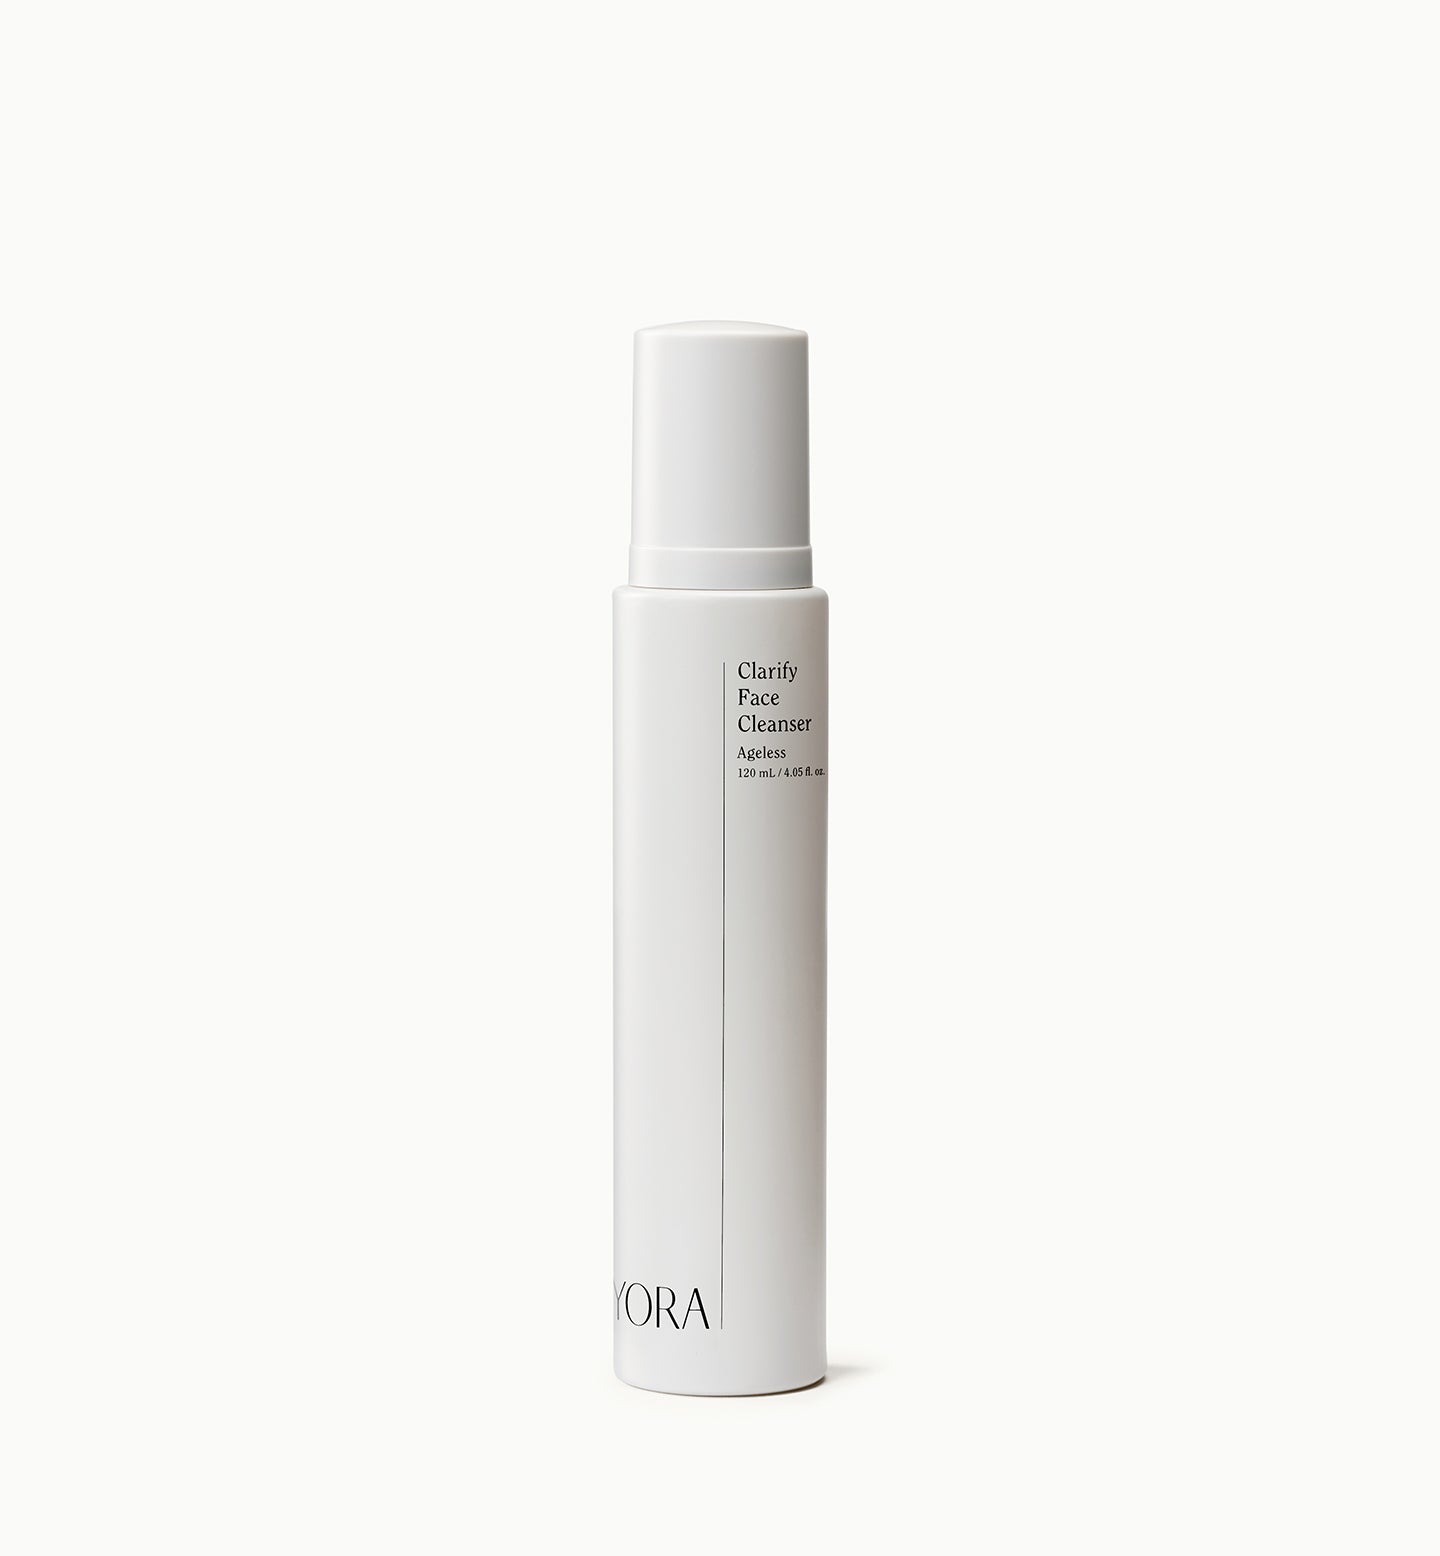 Clarify Face Cleanser